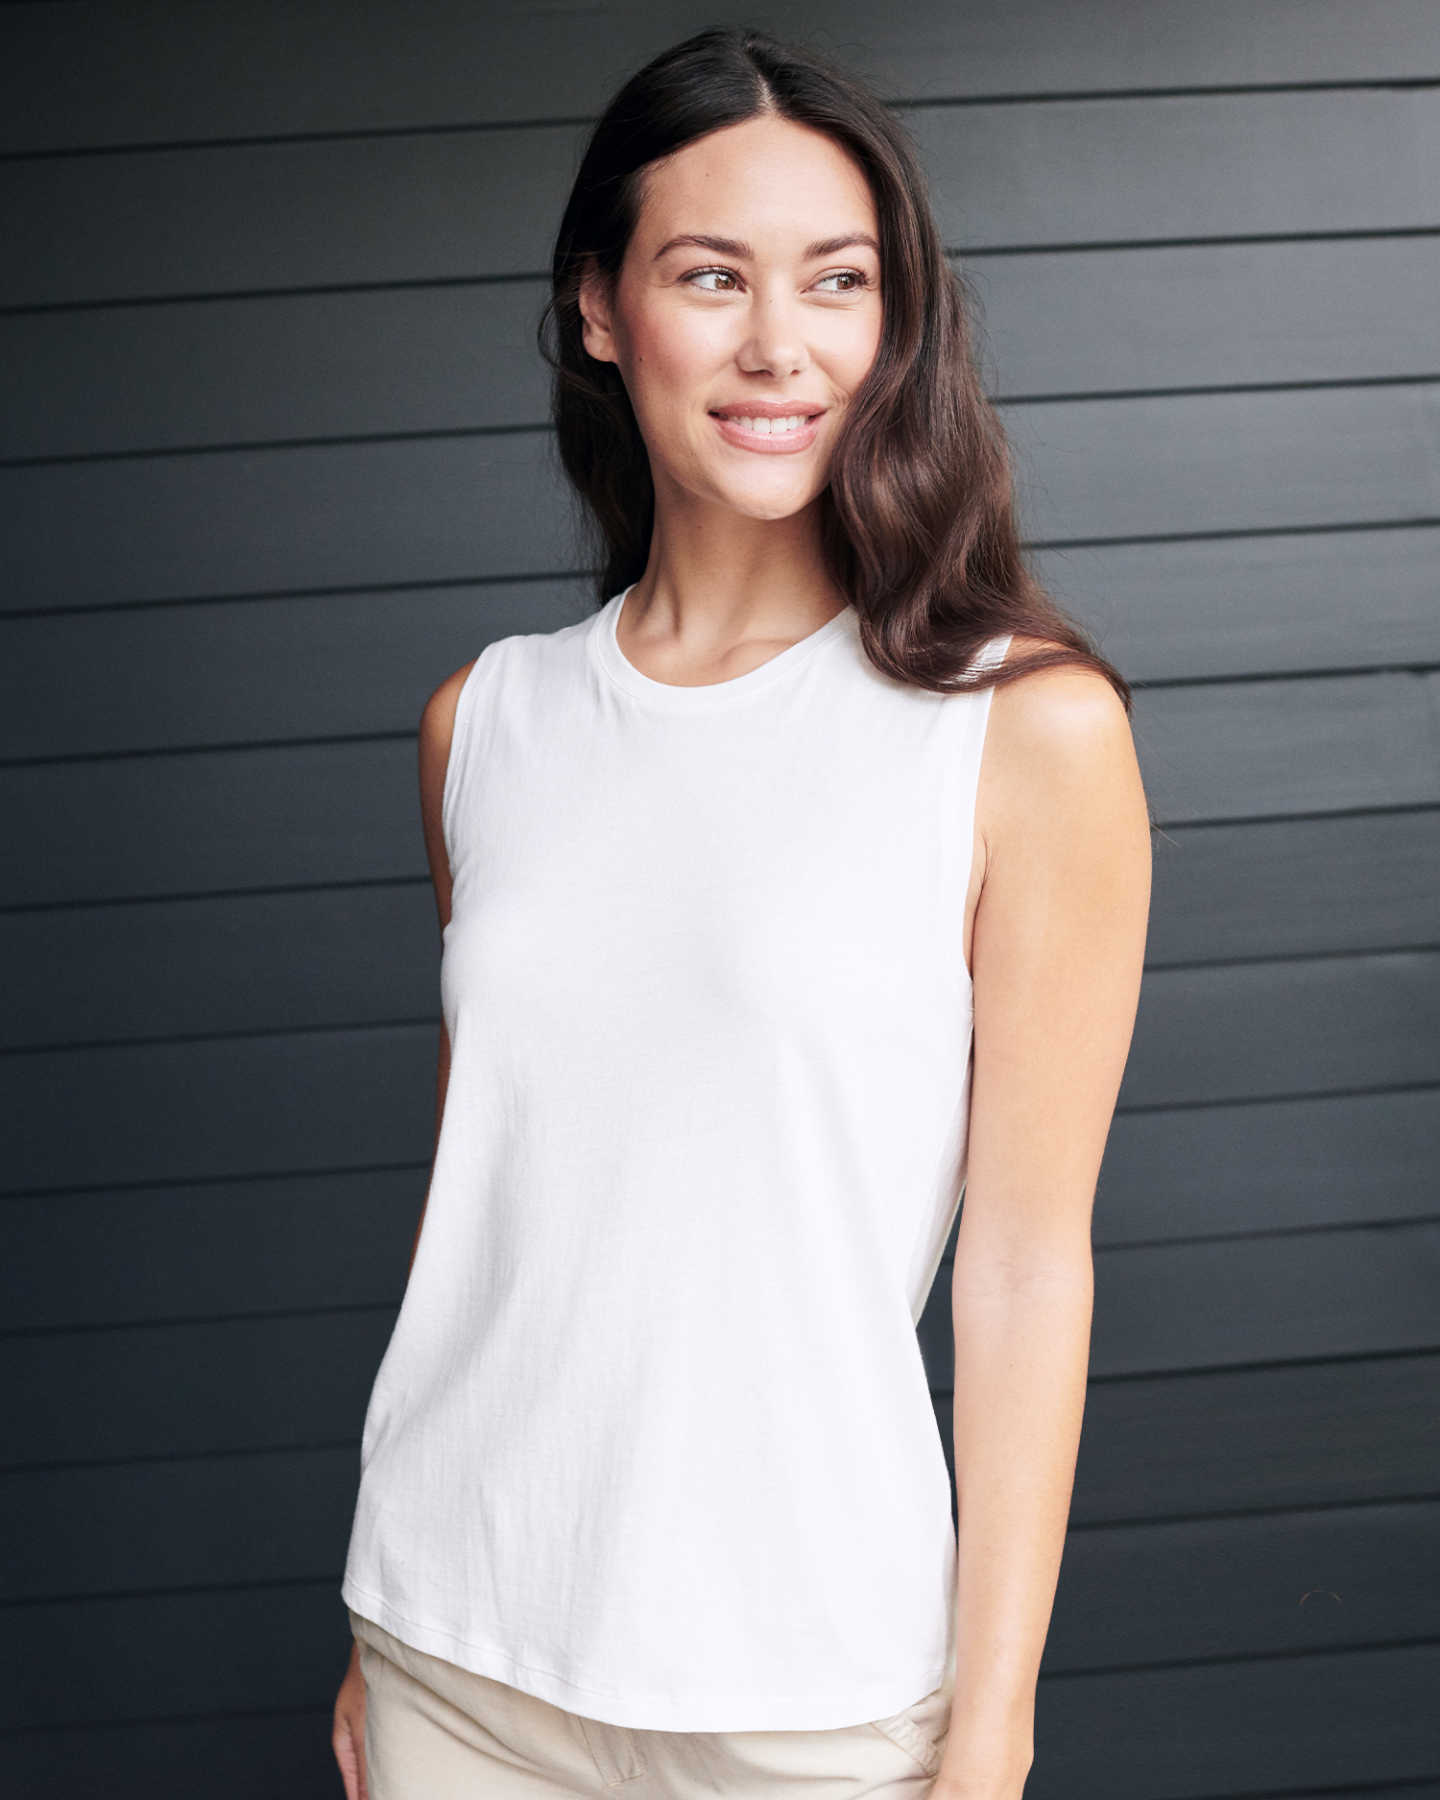 Cotton Modal Muscle Tank - White - 2